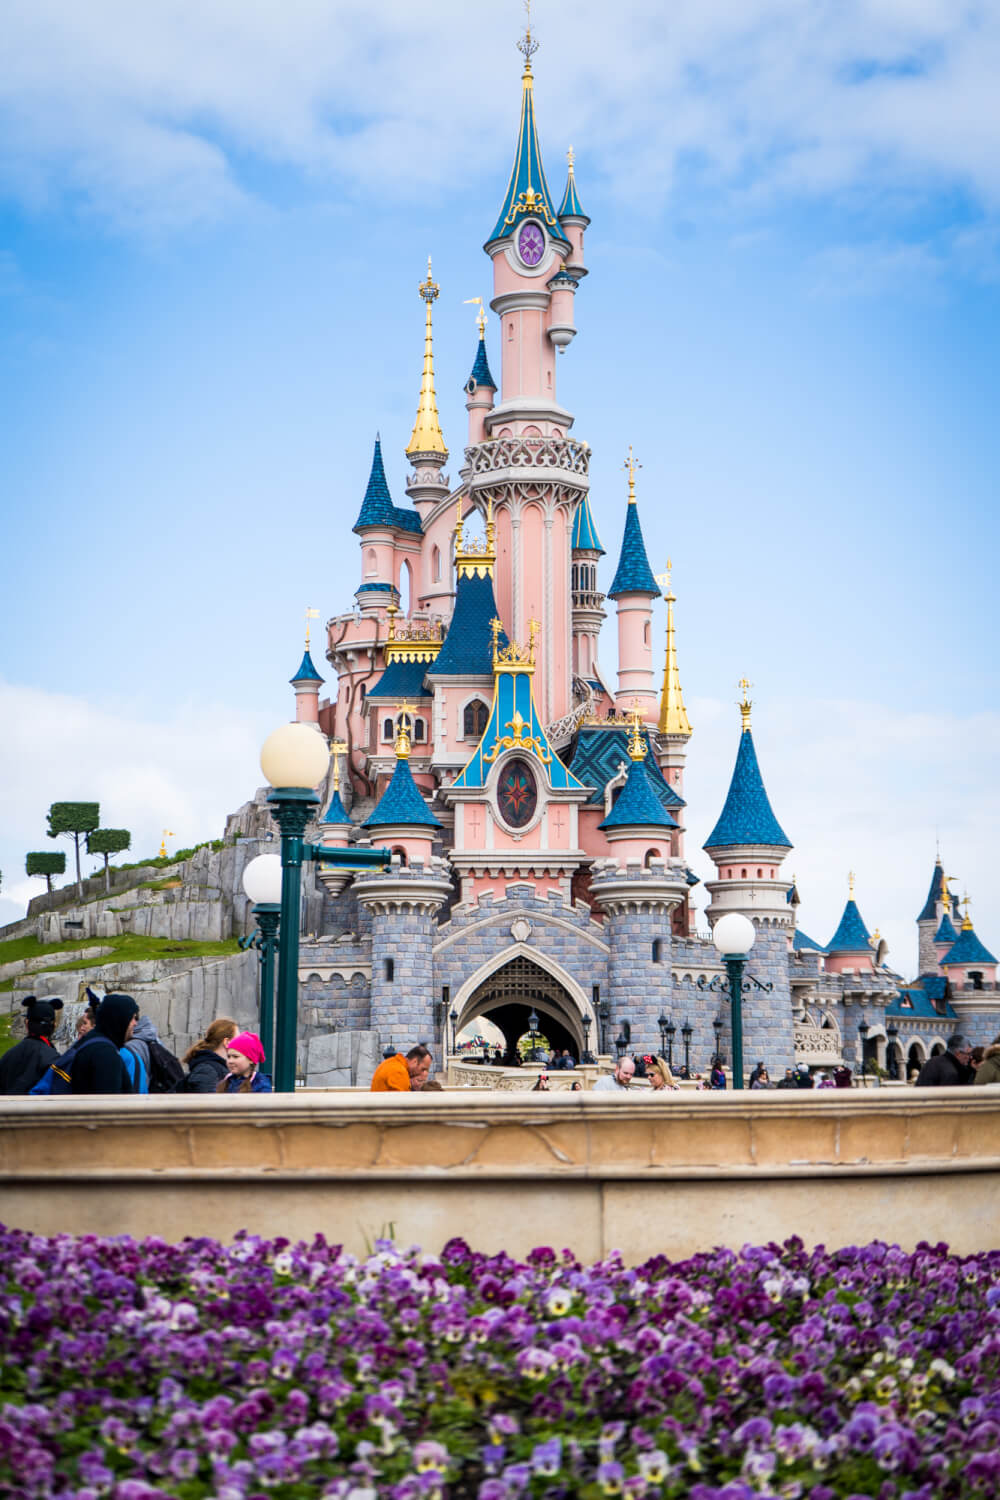 Disneyland Paris castle at Disneyland Park in Marne la Vallee, France